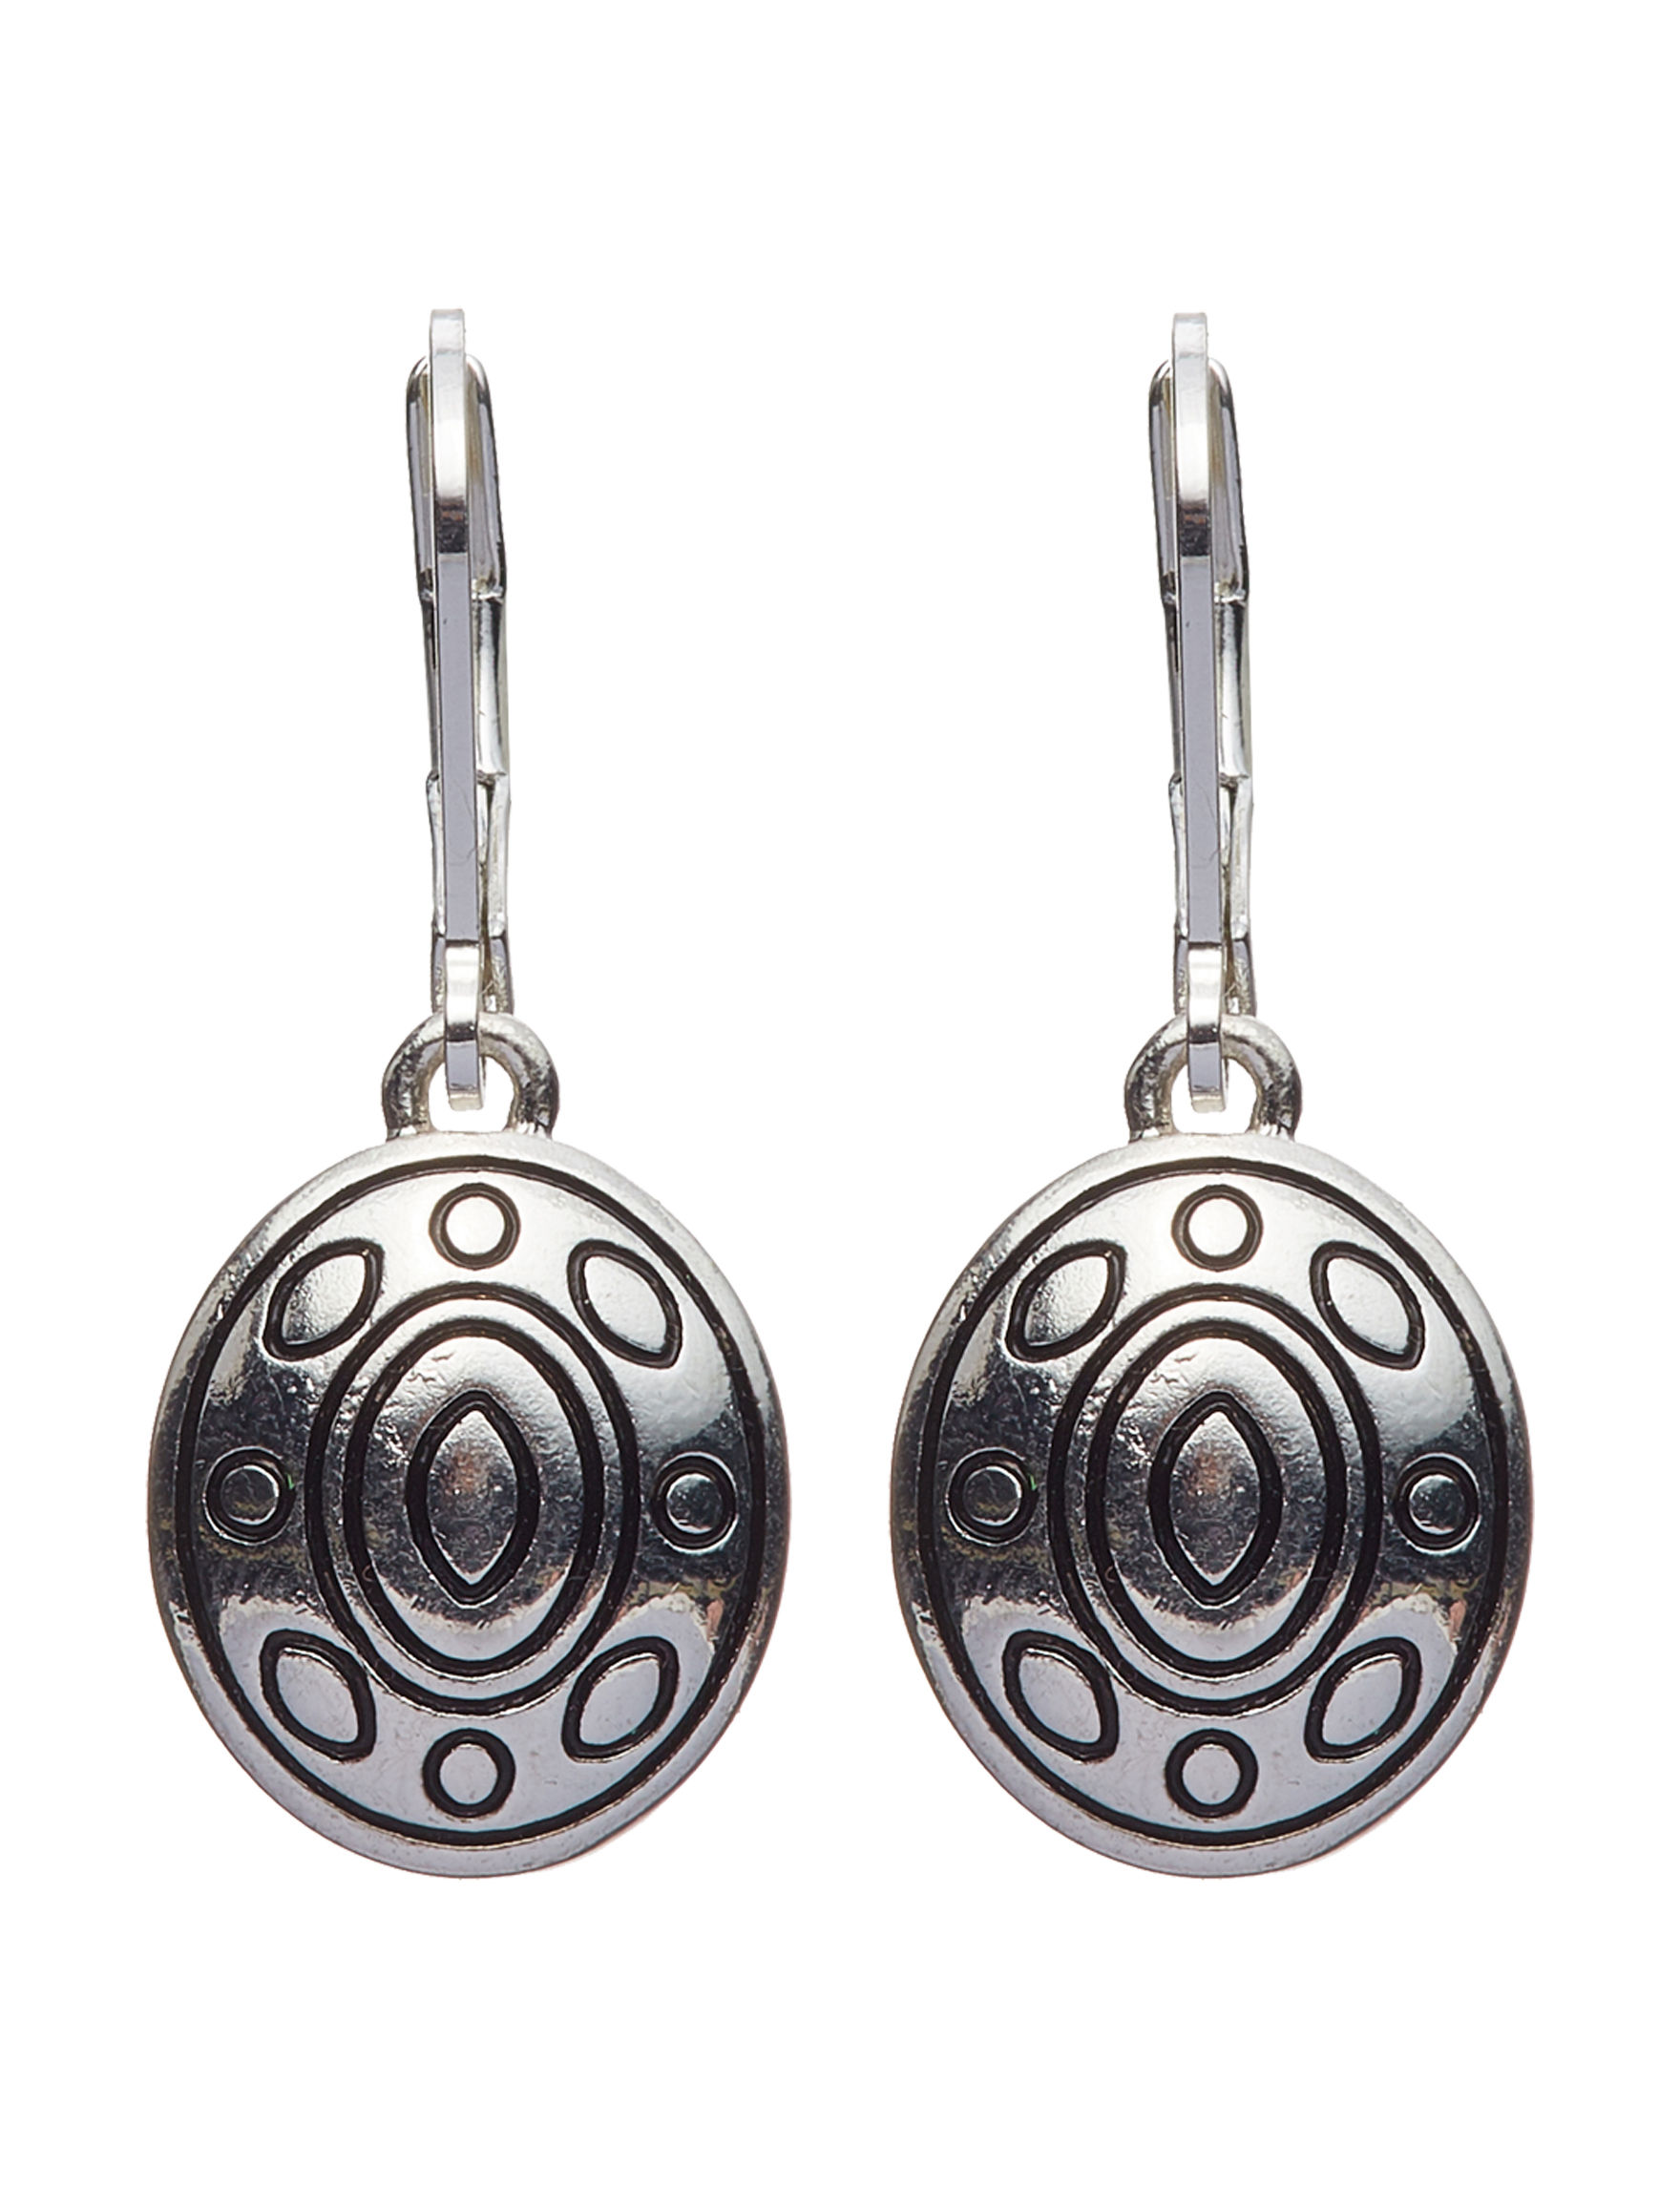 Napier Silver Drops Earrings Fashion Jewelry